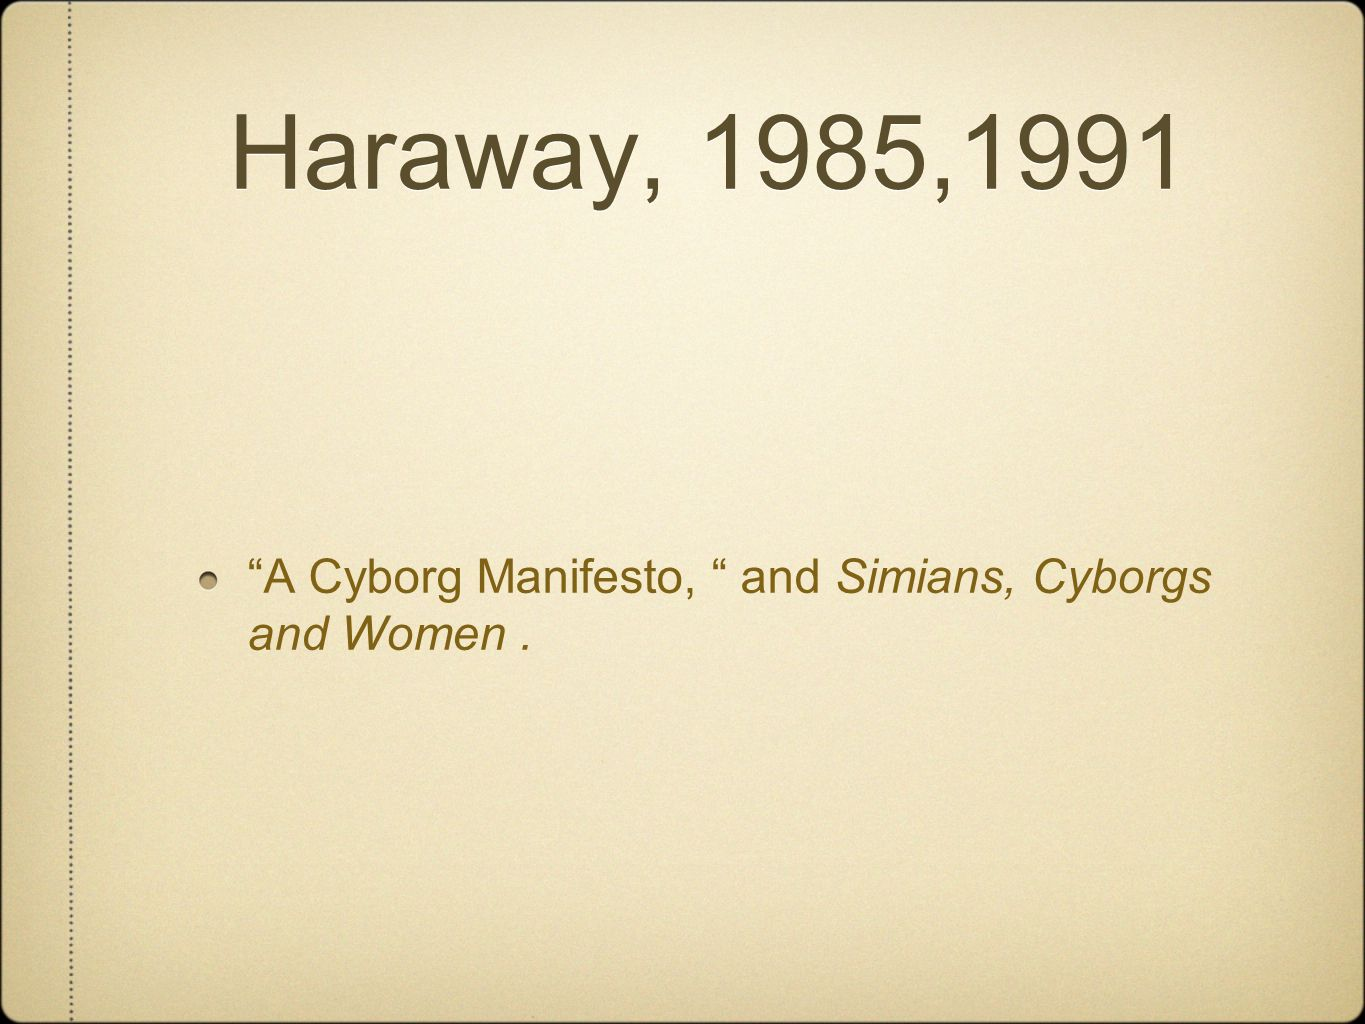 Haraway, 1985,1991 A Cyborg Manifesto, and Simians, Cyborgs and Women.